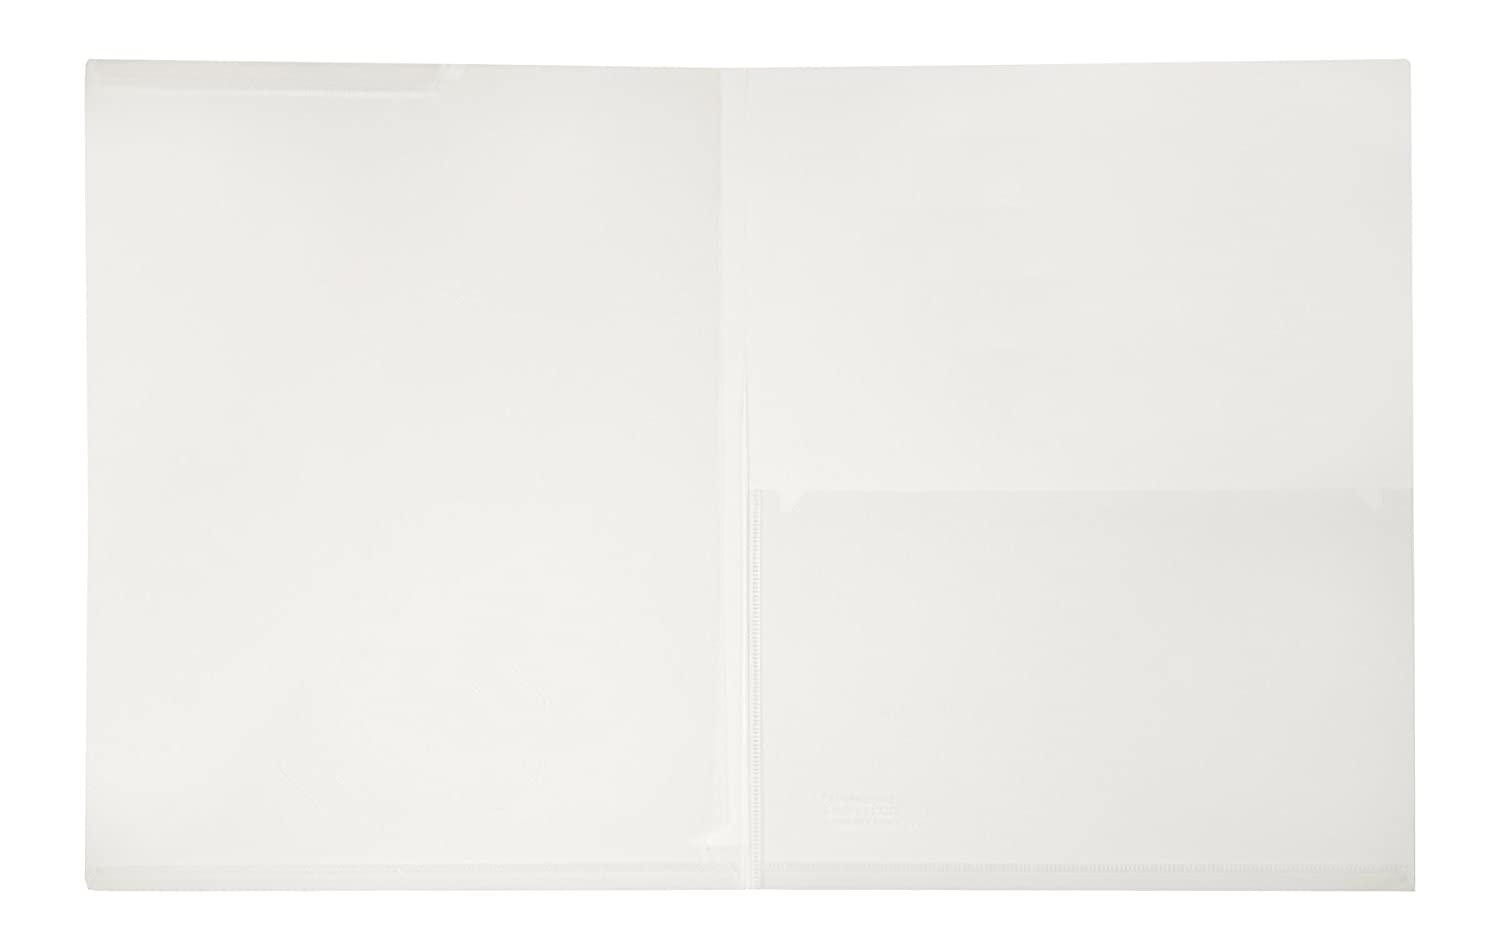 Lion Clear Plastic Presentation Folders, 2 EA/Pack, 1-Pack (52090-CR) Lion Office Products